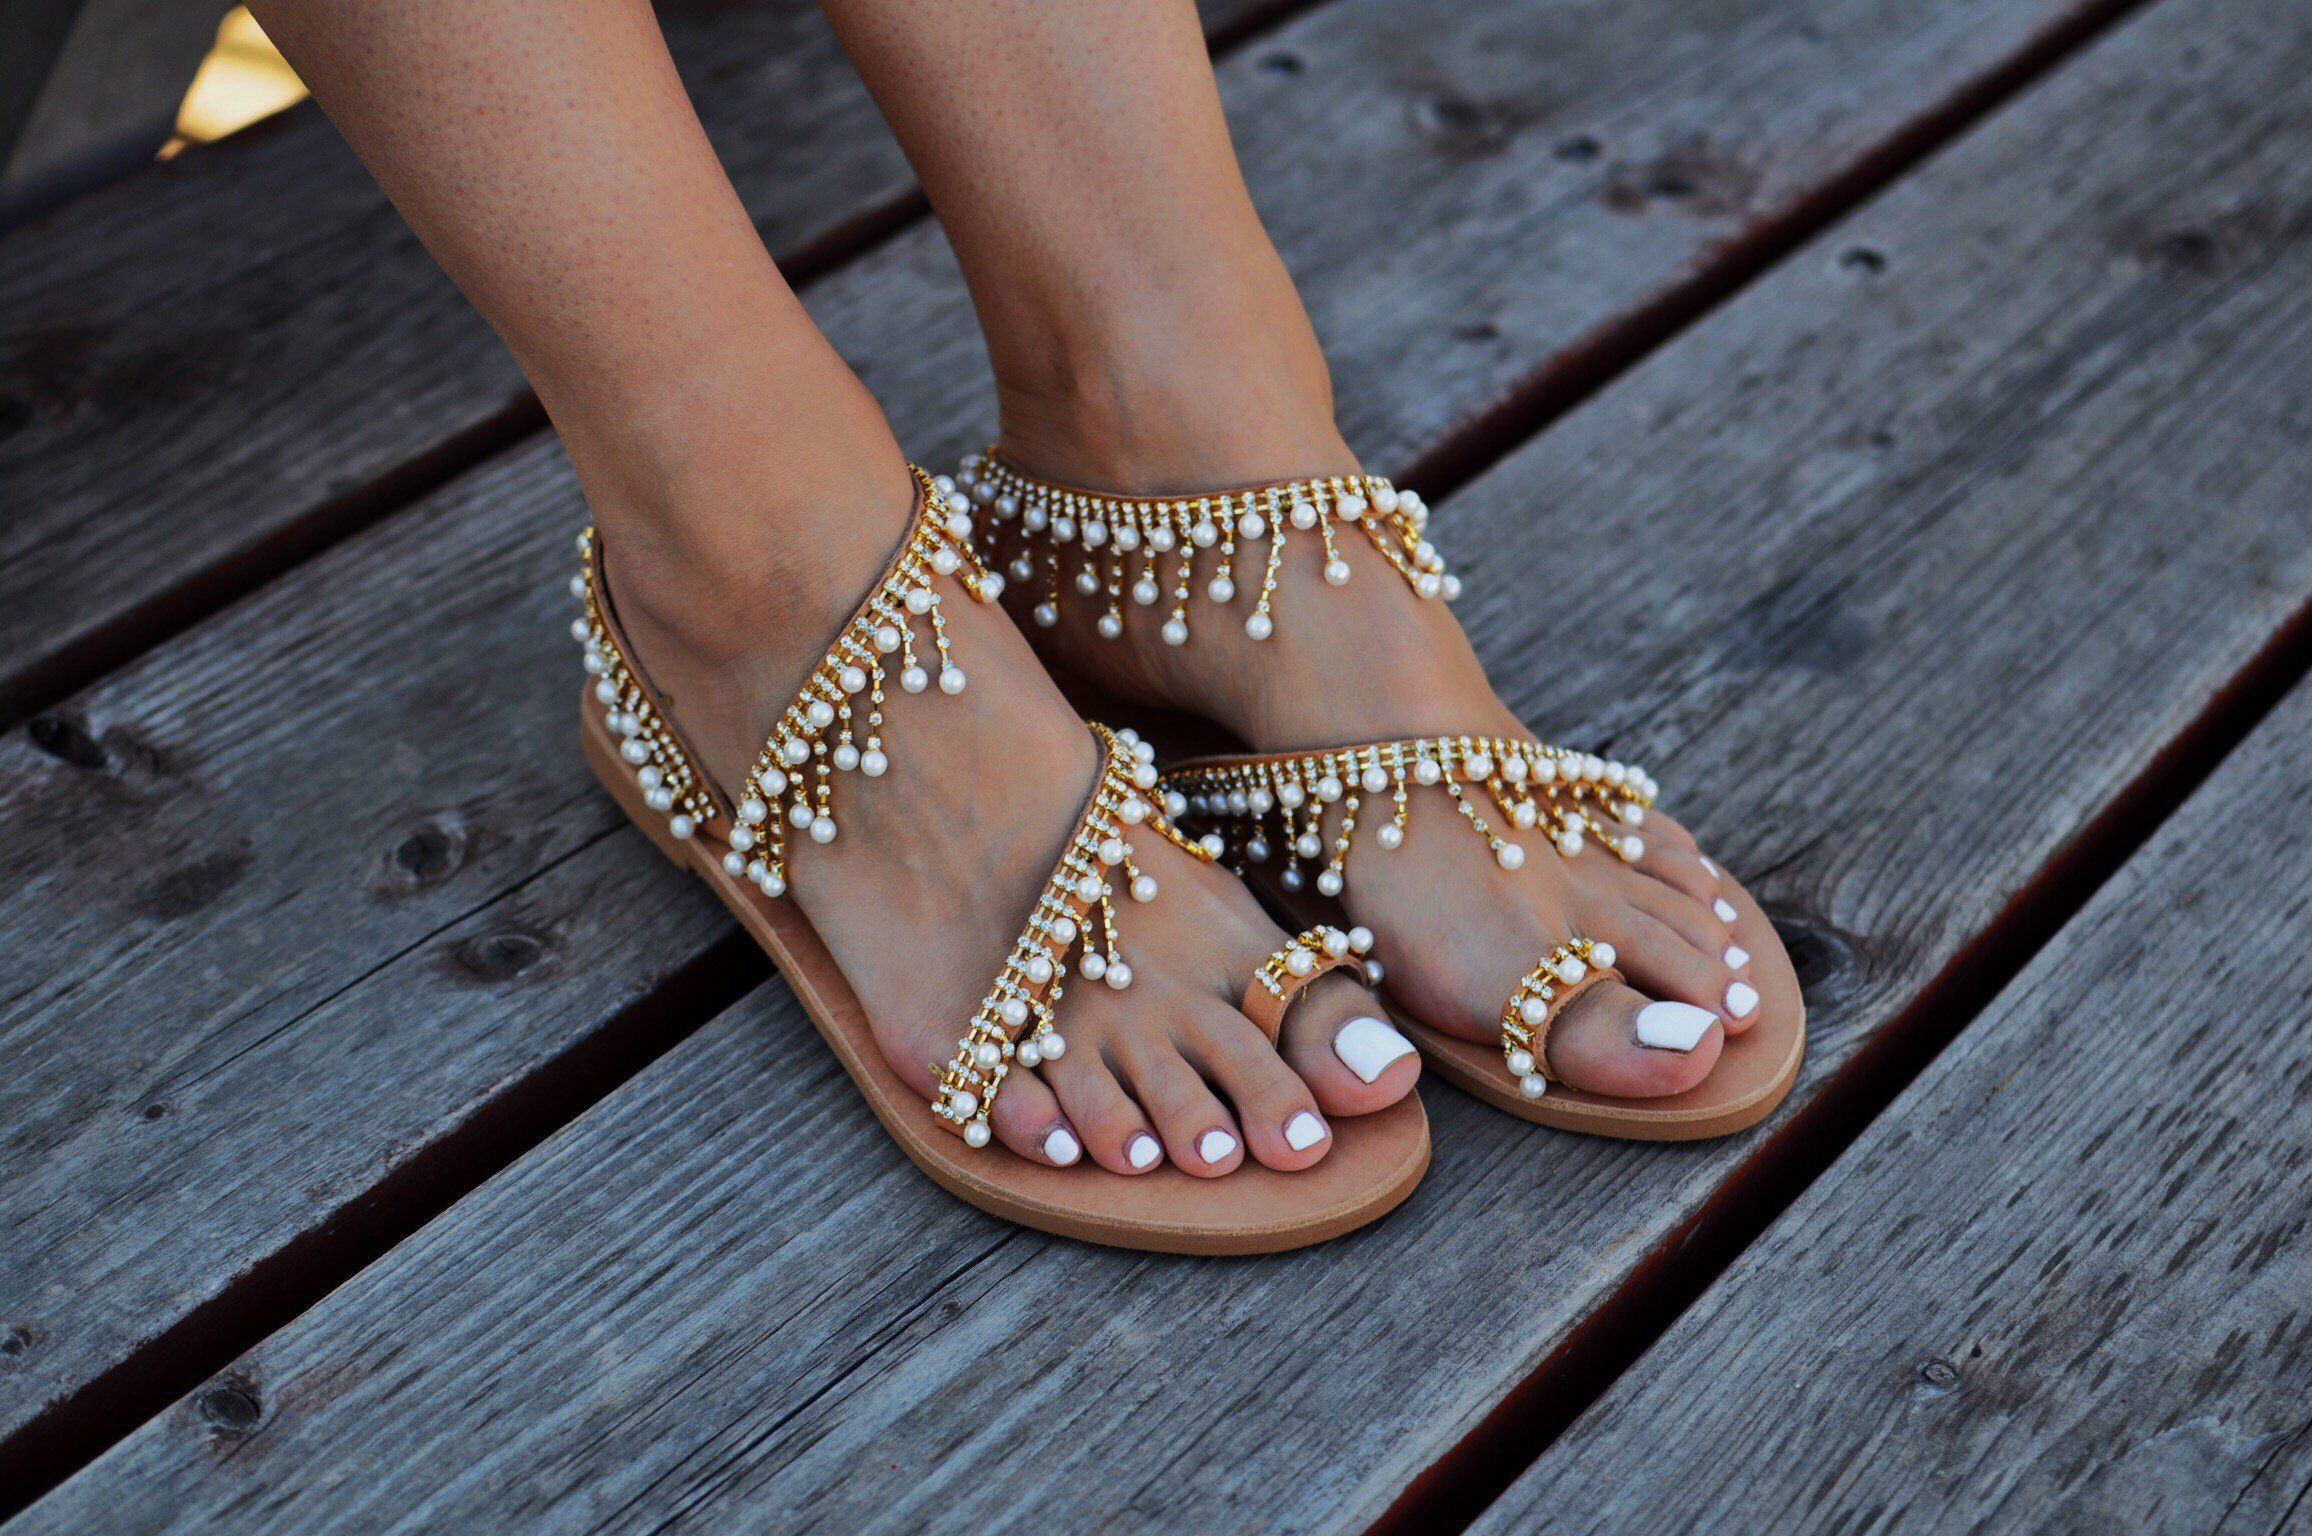 f4e3ba1bc Shoes - 2018 Fashion Summer Pearl Leather Handmade Chic Sandals in 2019